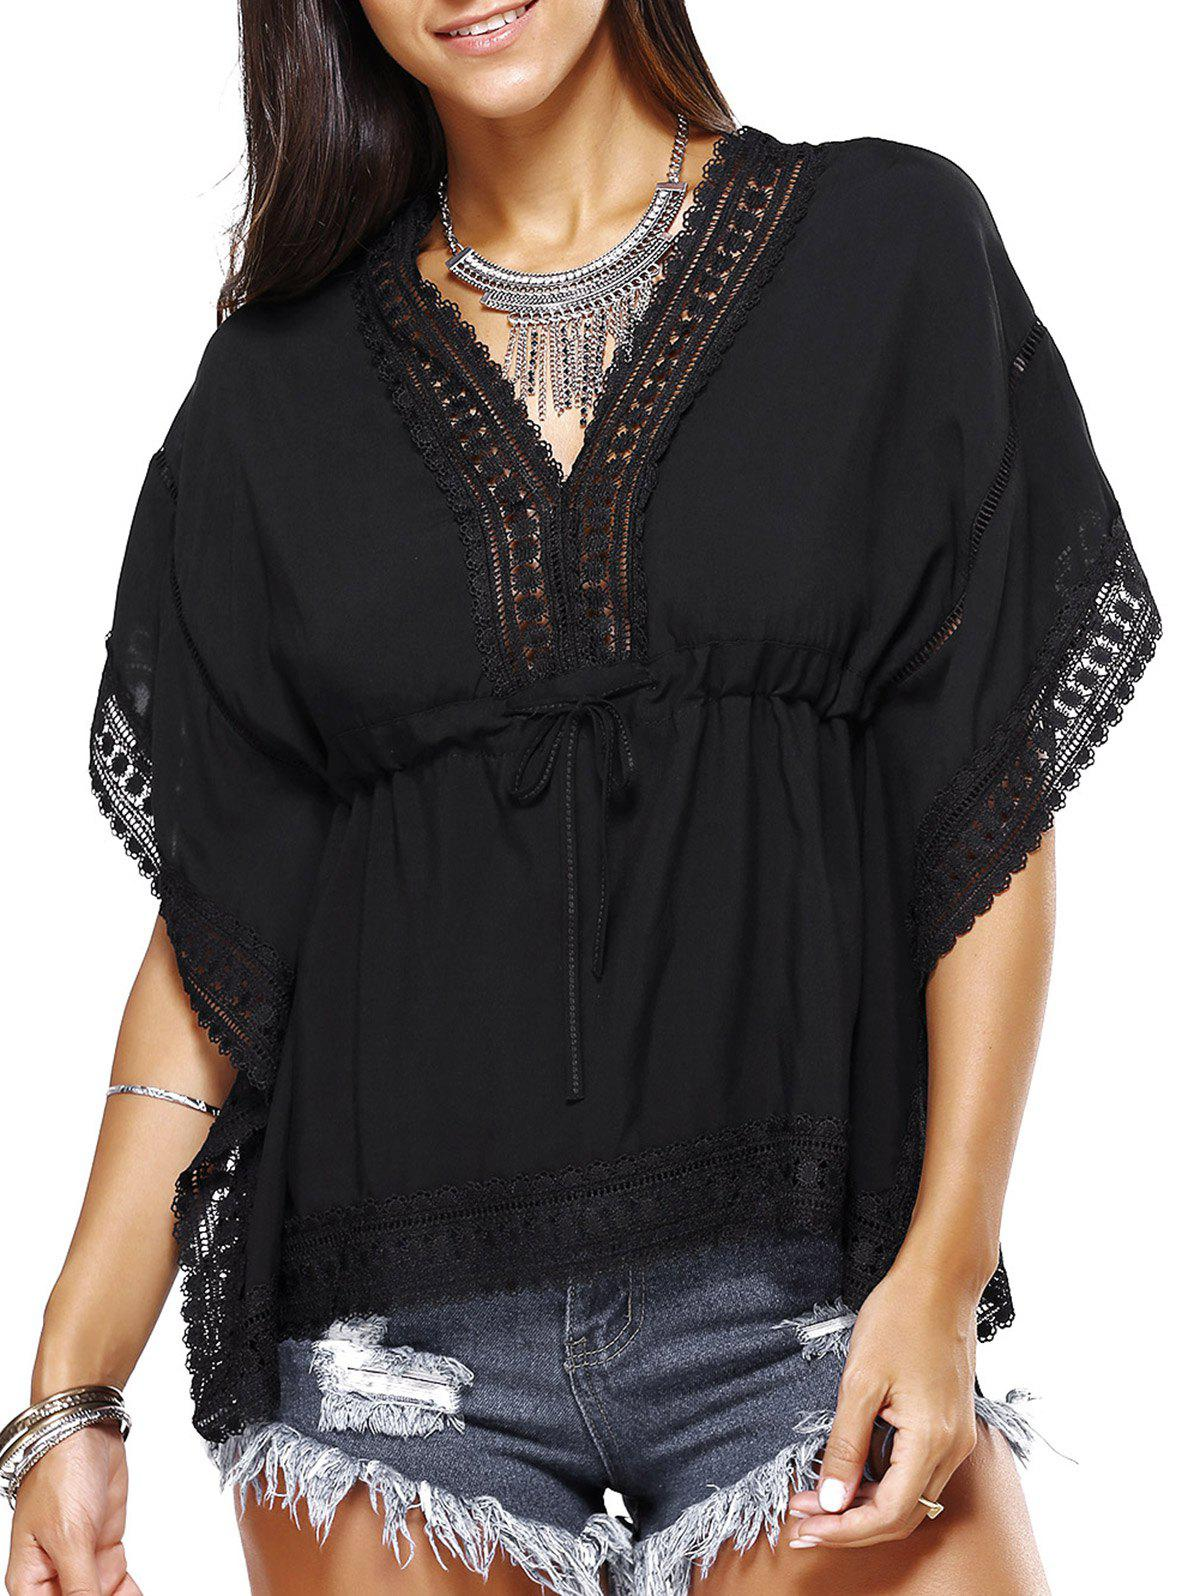 Endearing Batwing Sleeve Drawstring Blouse For Women - BLACK ONE SIZE